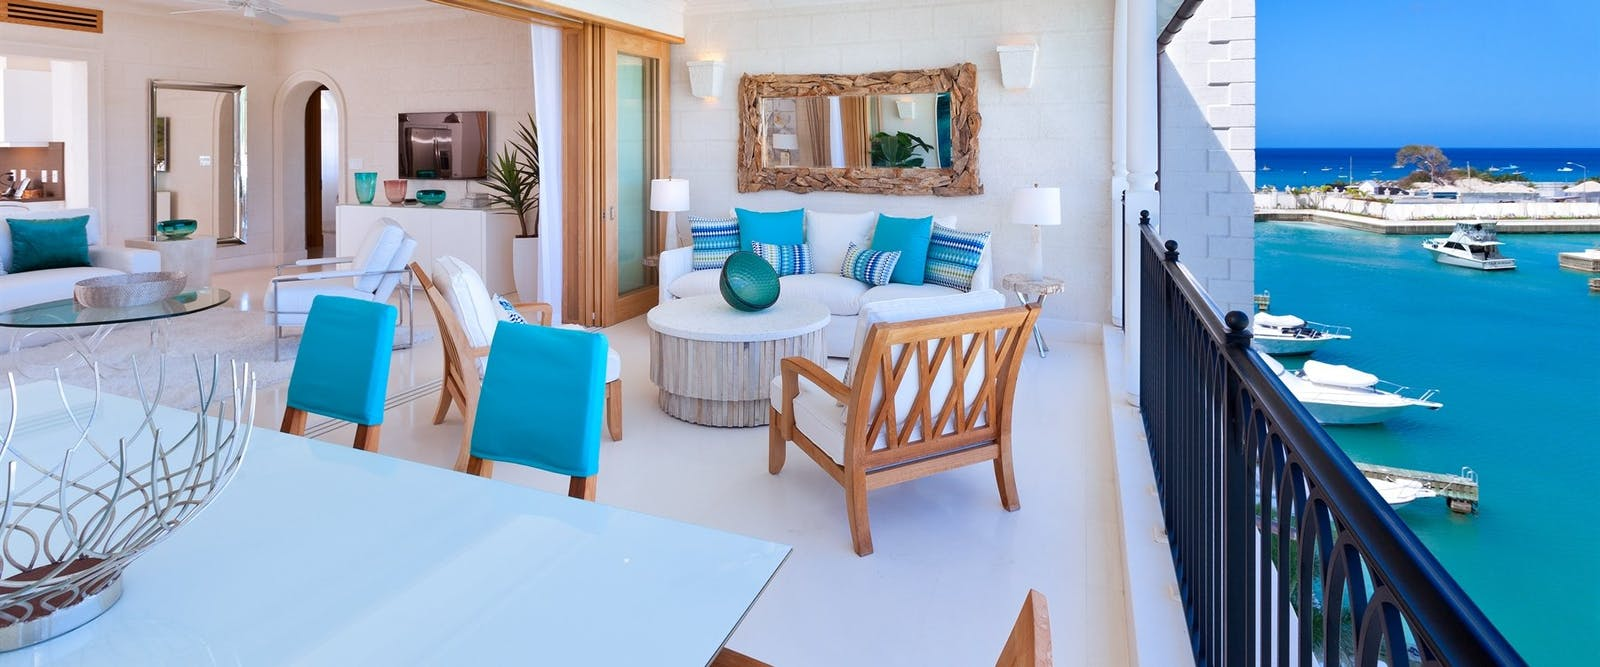 Residence Patio at Port Ferdinand Marina & Luxury Residences, Barbados